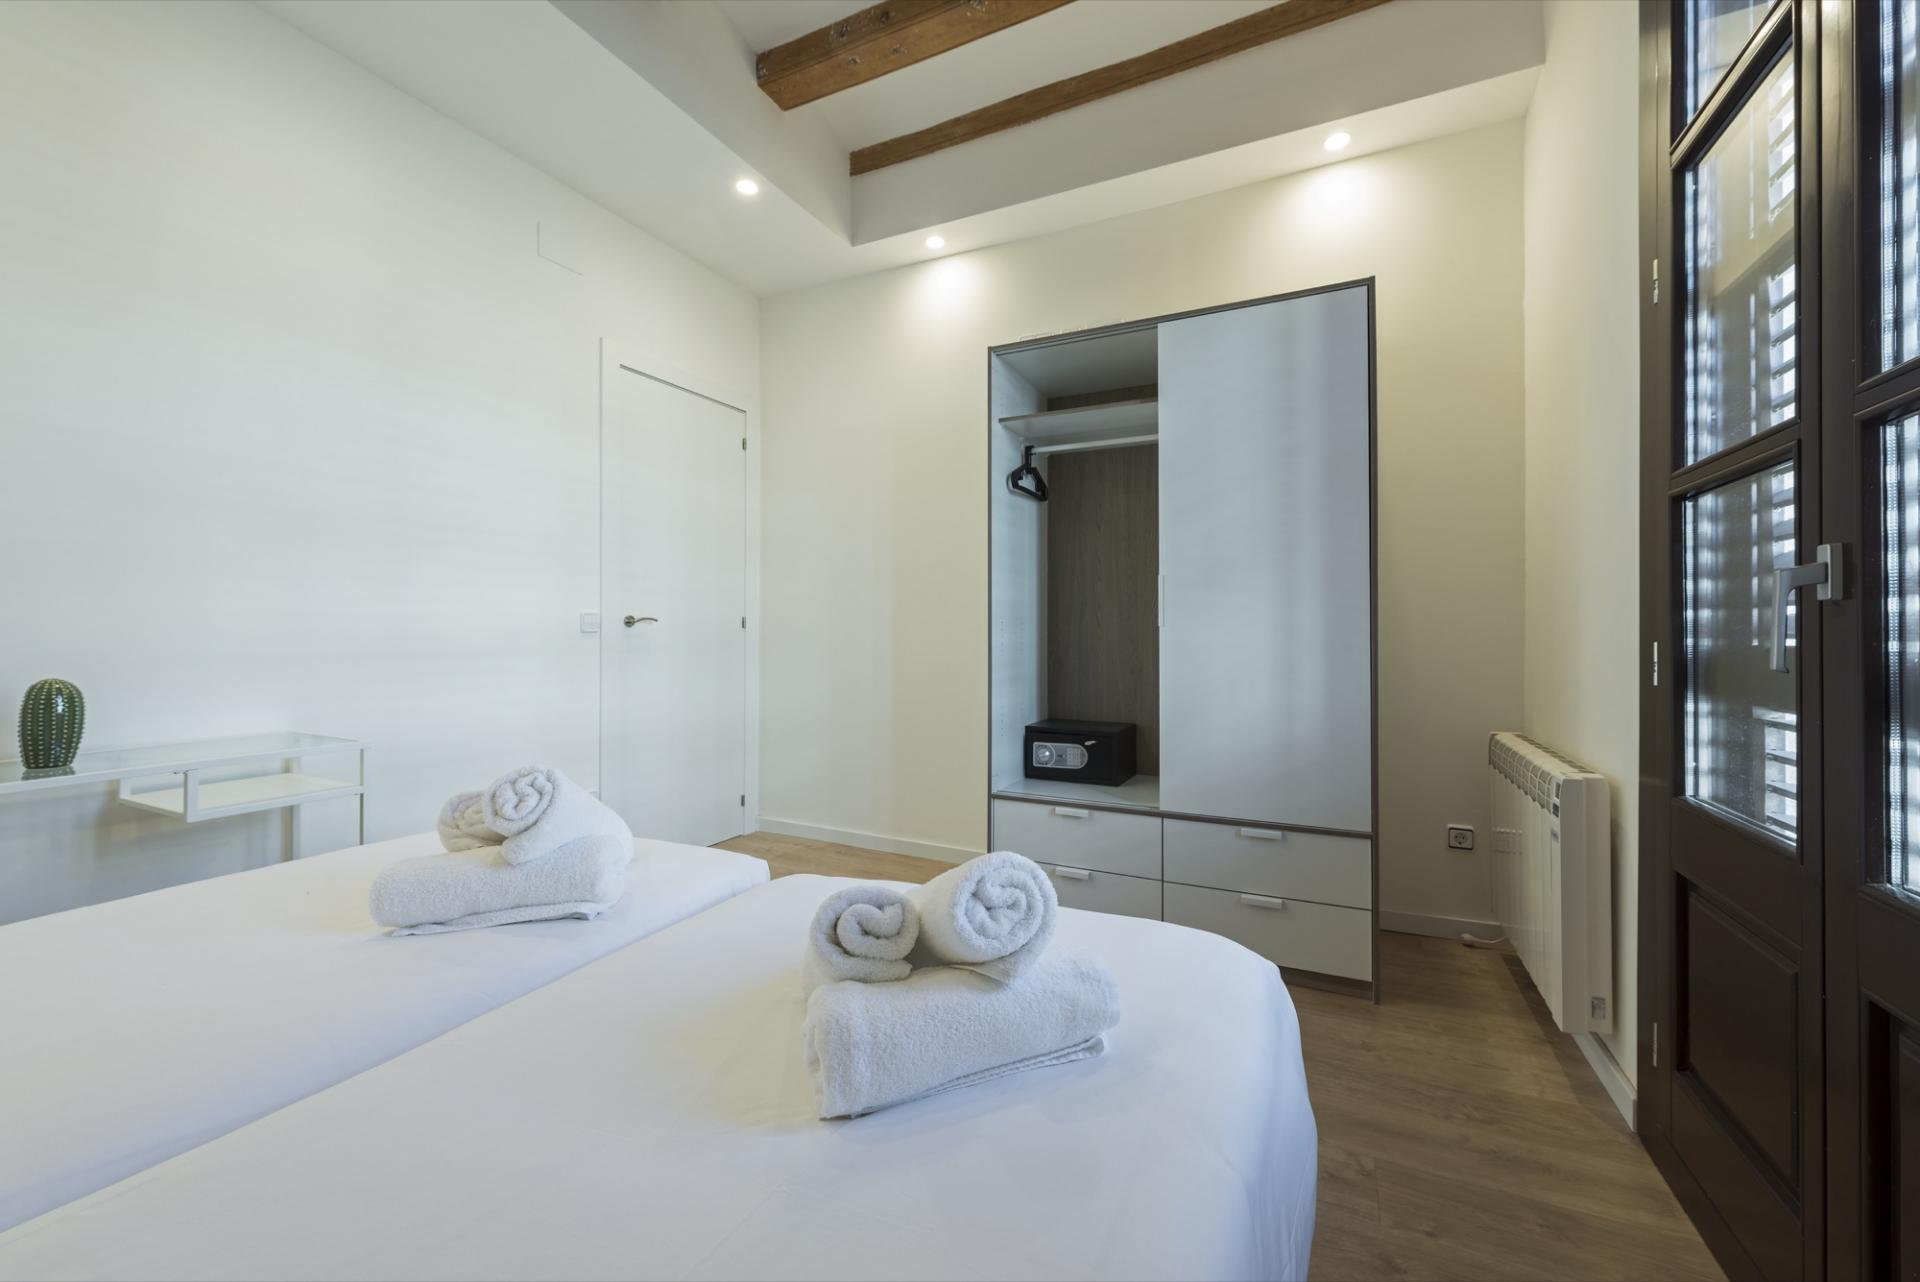 Twin beds at Pelayo Suites, El Raval, Barcelona - Citybase Apartments